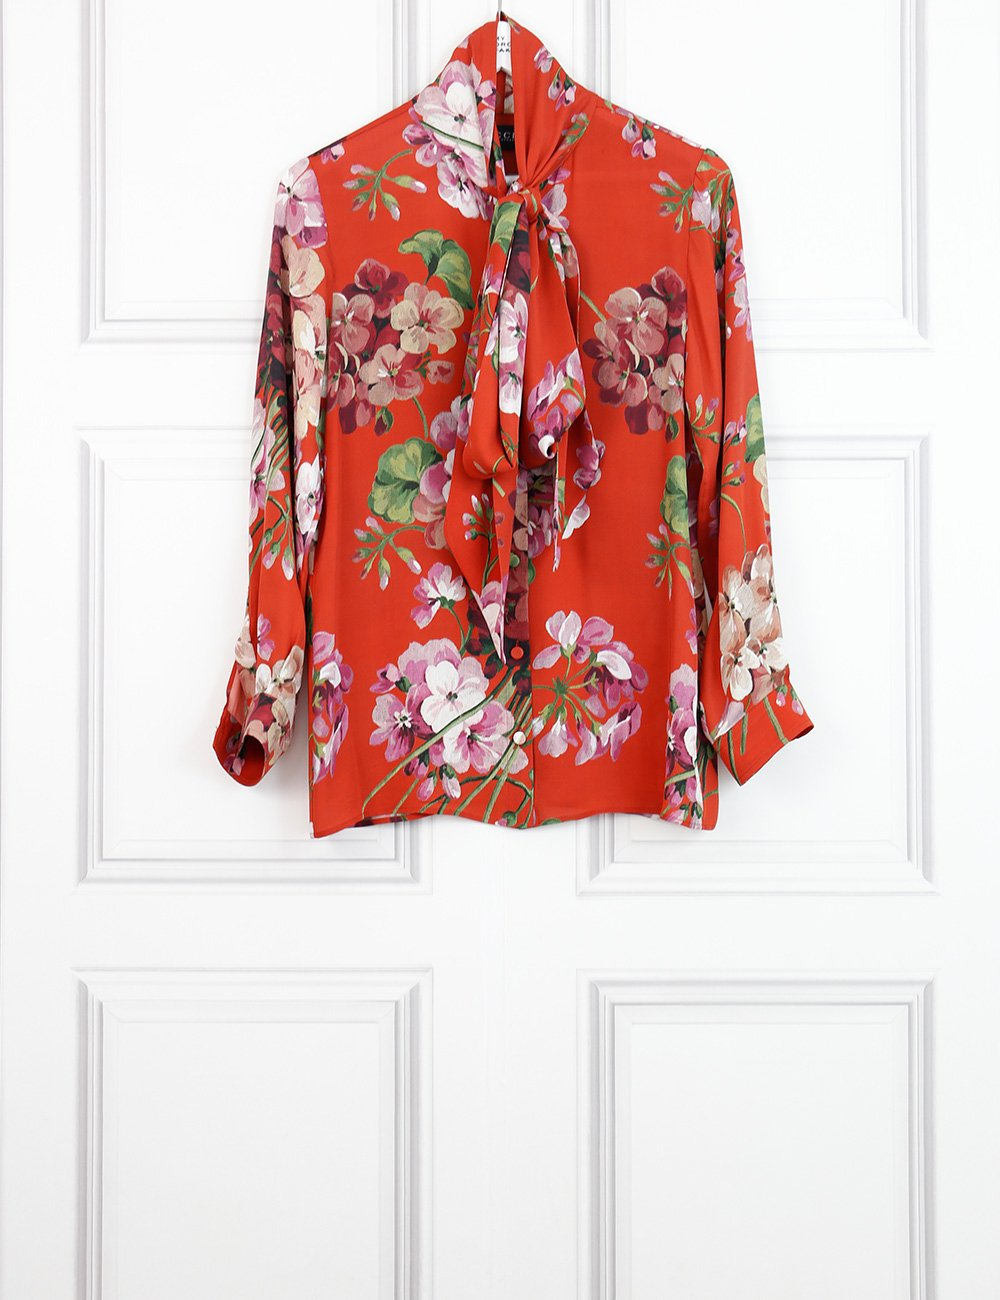 Gucci multicolour printed silk shirt with bloom floral motives 6UK- My Wardrobe Mistakes